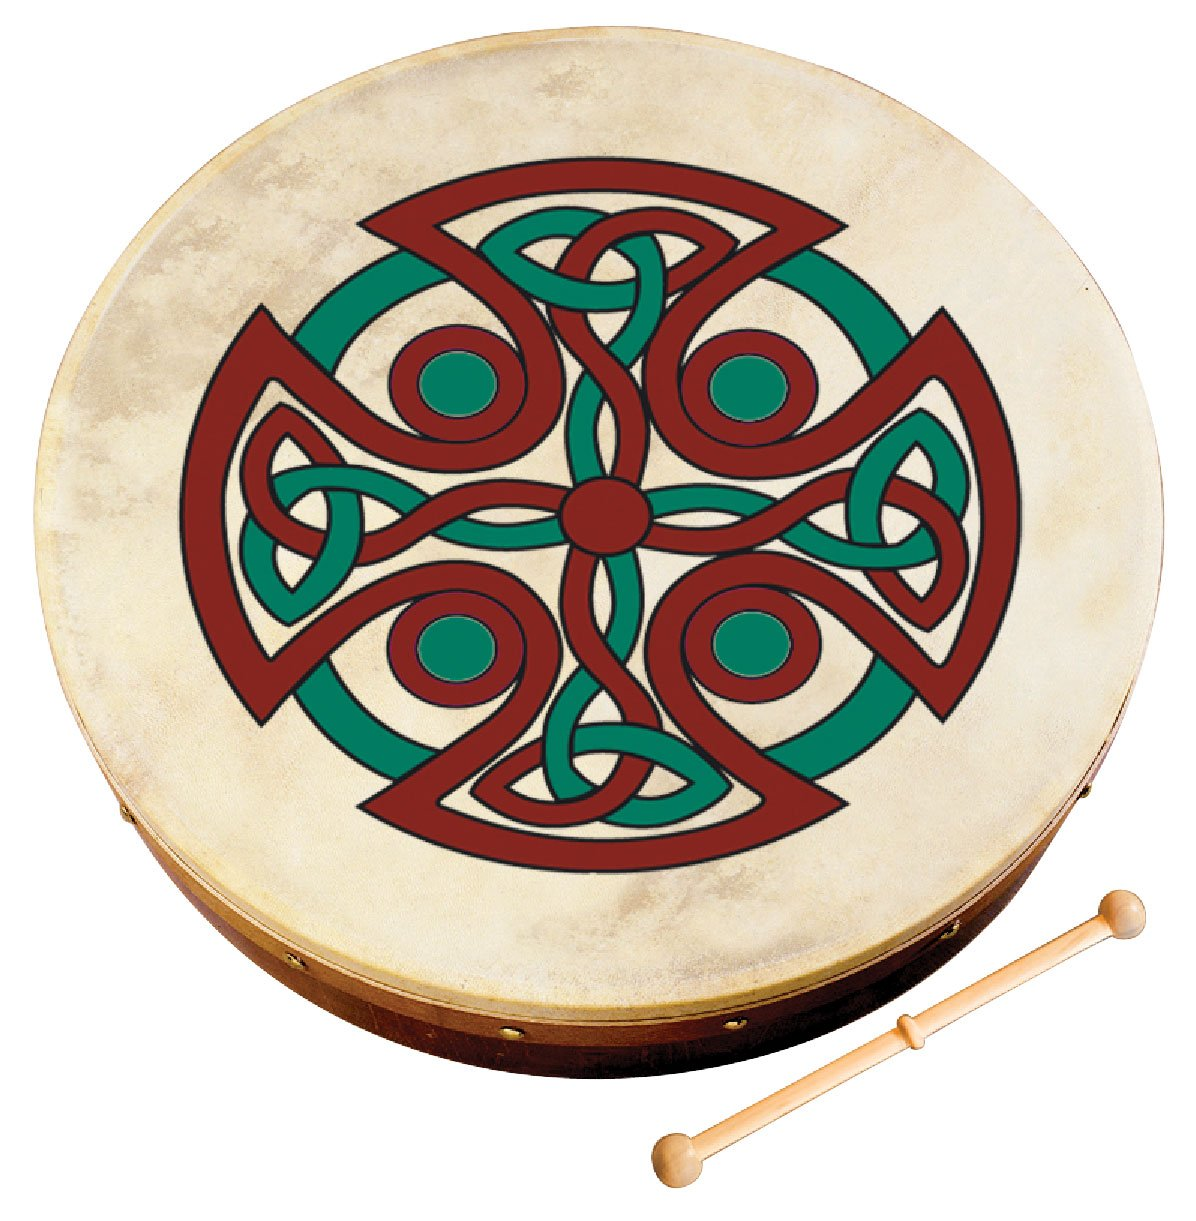 "Waltons Bodhrán 8"" (Animals) - Handcrafted Irish Instrument - Crisp & Musical Tone - Hardwood Beater Included w/ Purchase AA5390731030151"